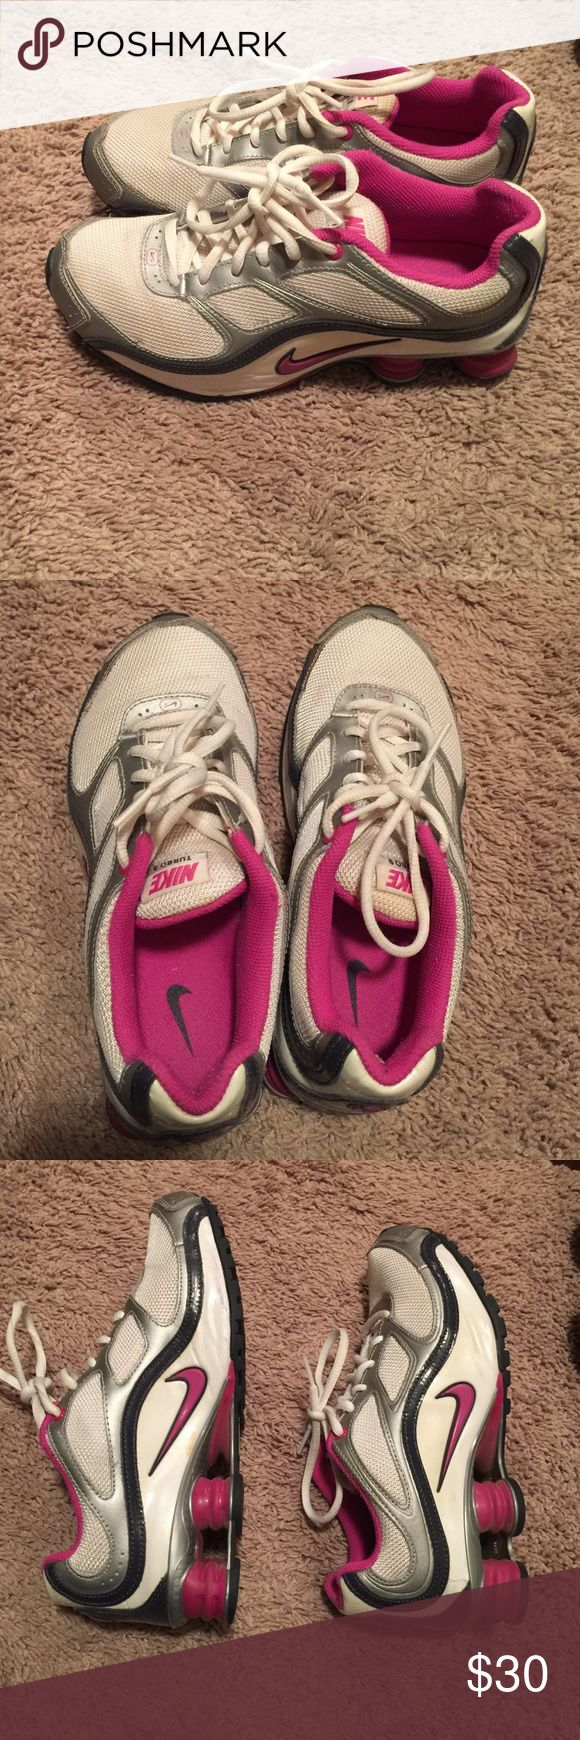 Nike shocks White with grey and pink trim. Not worn much, size youth 5.5. Almost new. Nike Shoes Athletic Shoes